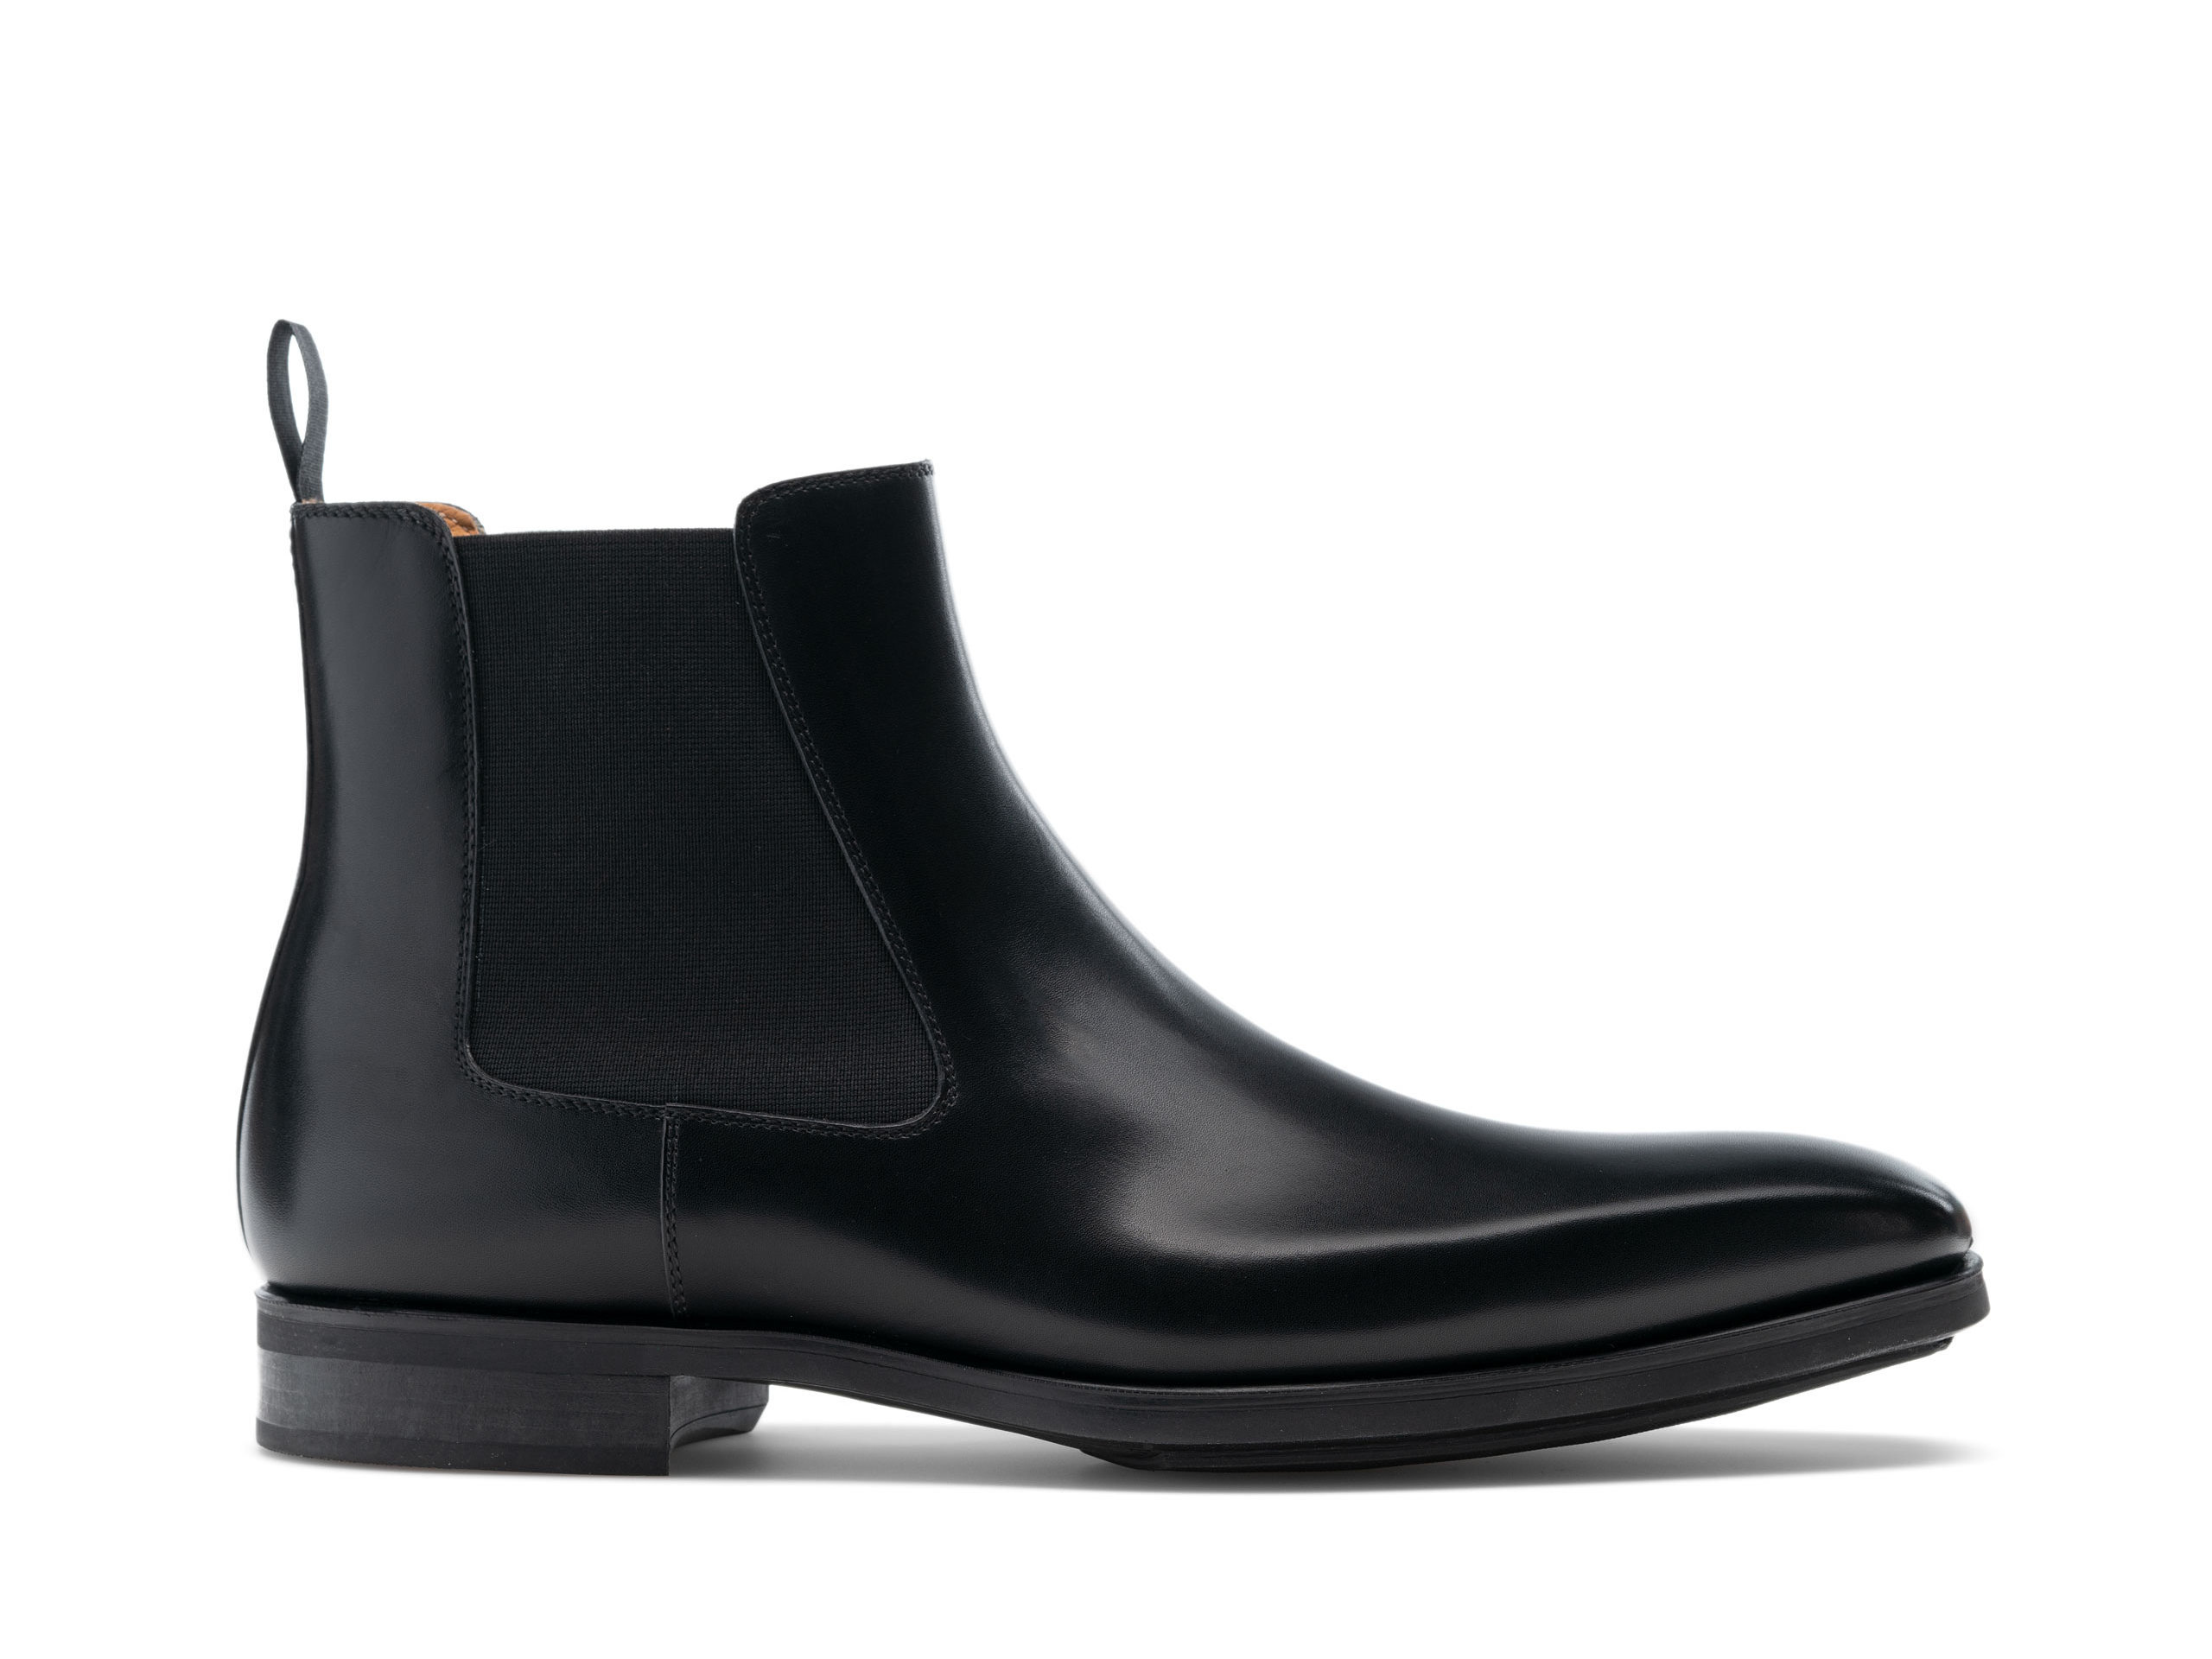 Side view of the Magnanni Riley Black Men's Leather Chelsea Boots